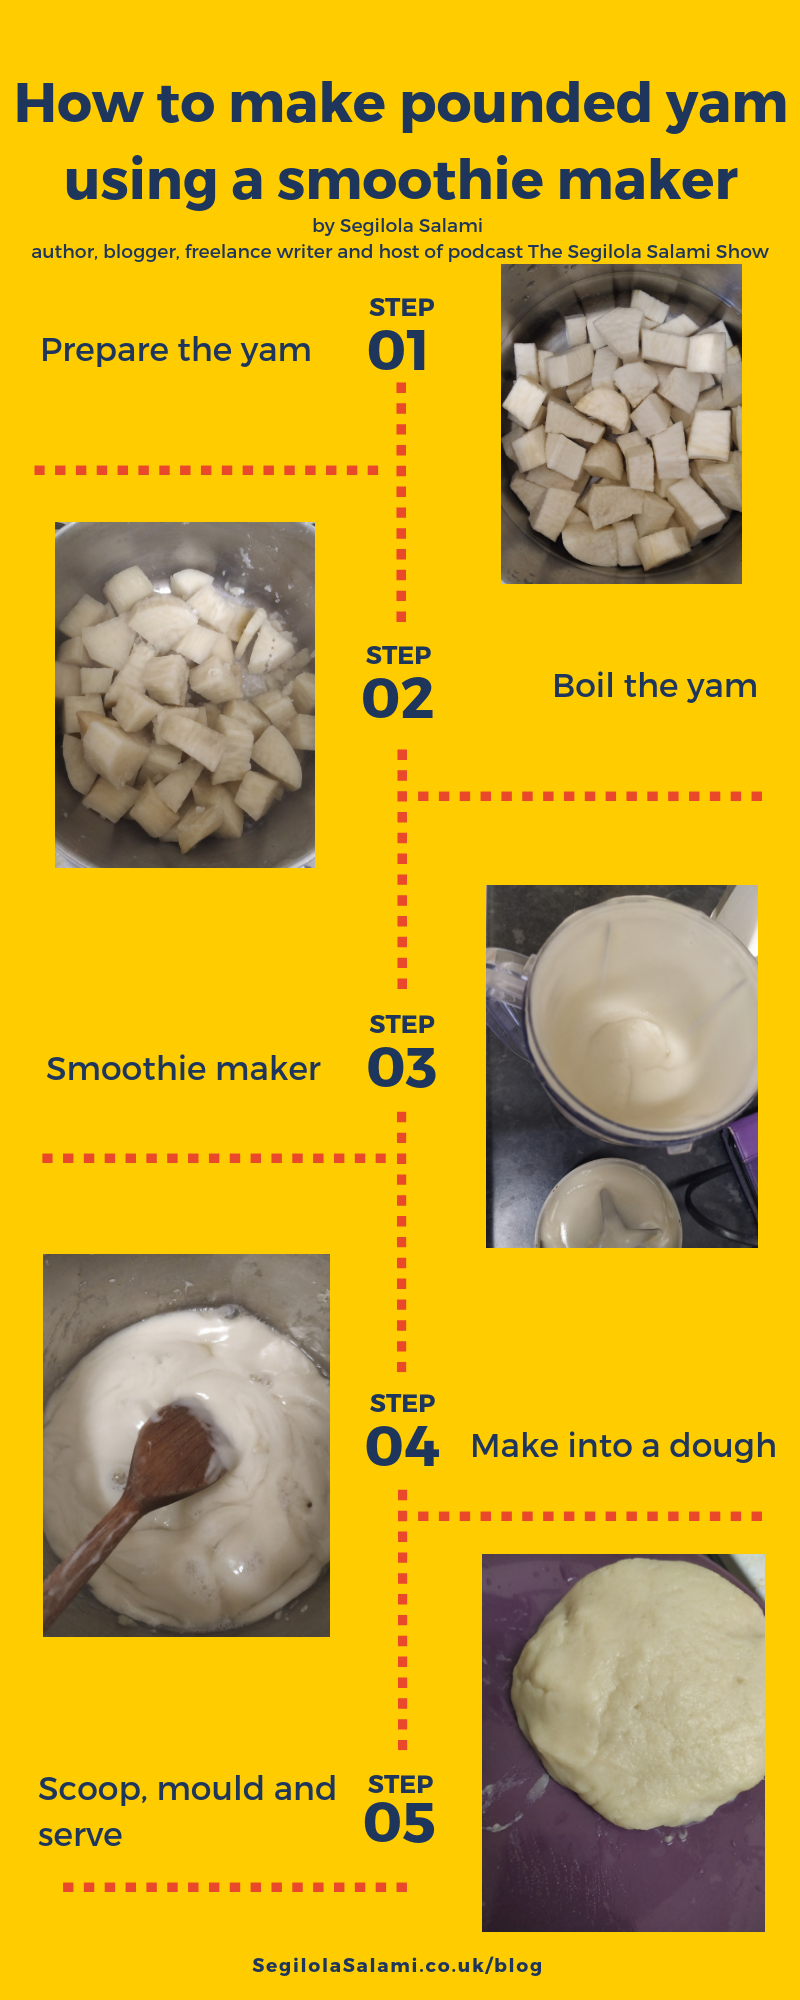 how to make pounded yam in a smoothie maker by Segilola Salami